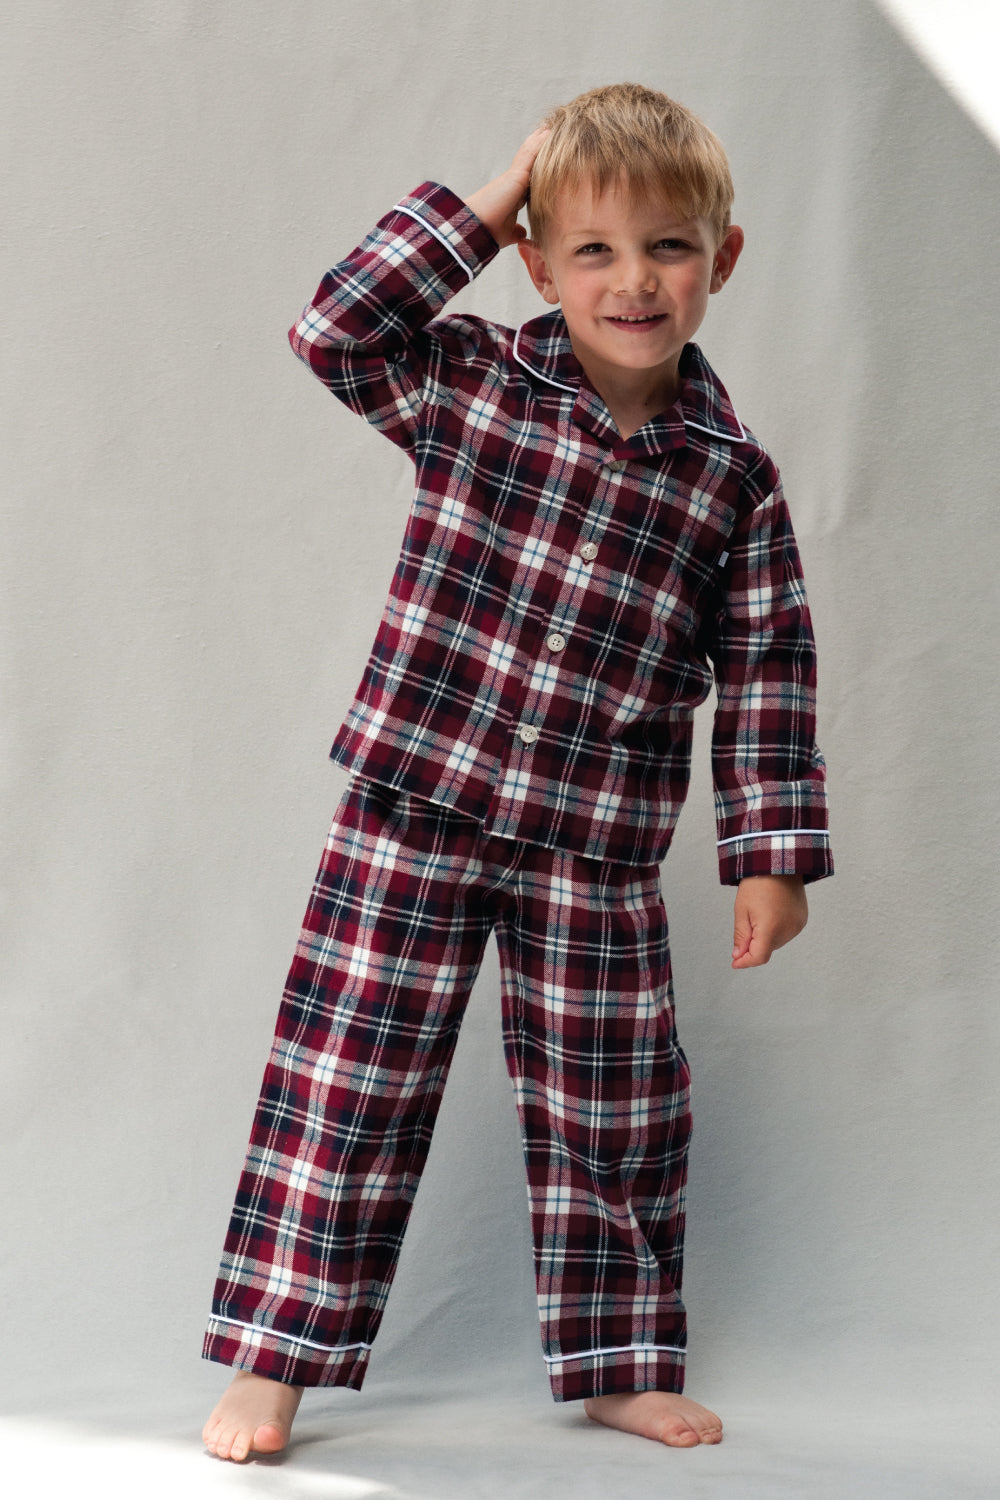 Traditional Pyjamas for Boys in classic check fabric for ages 1-10 years